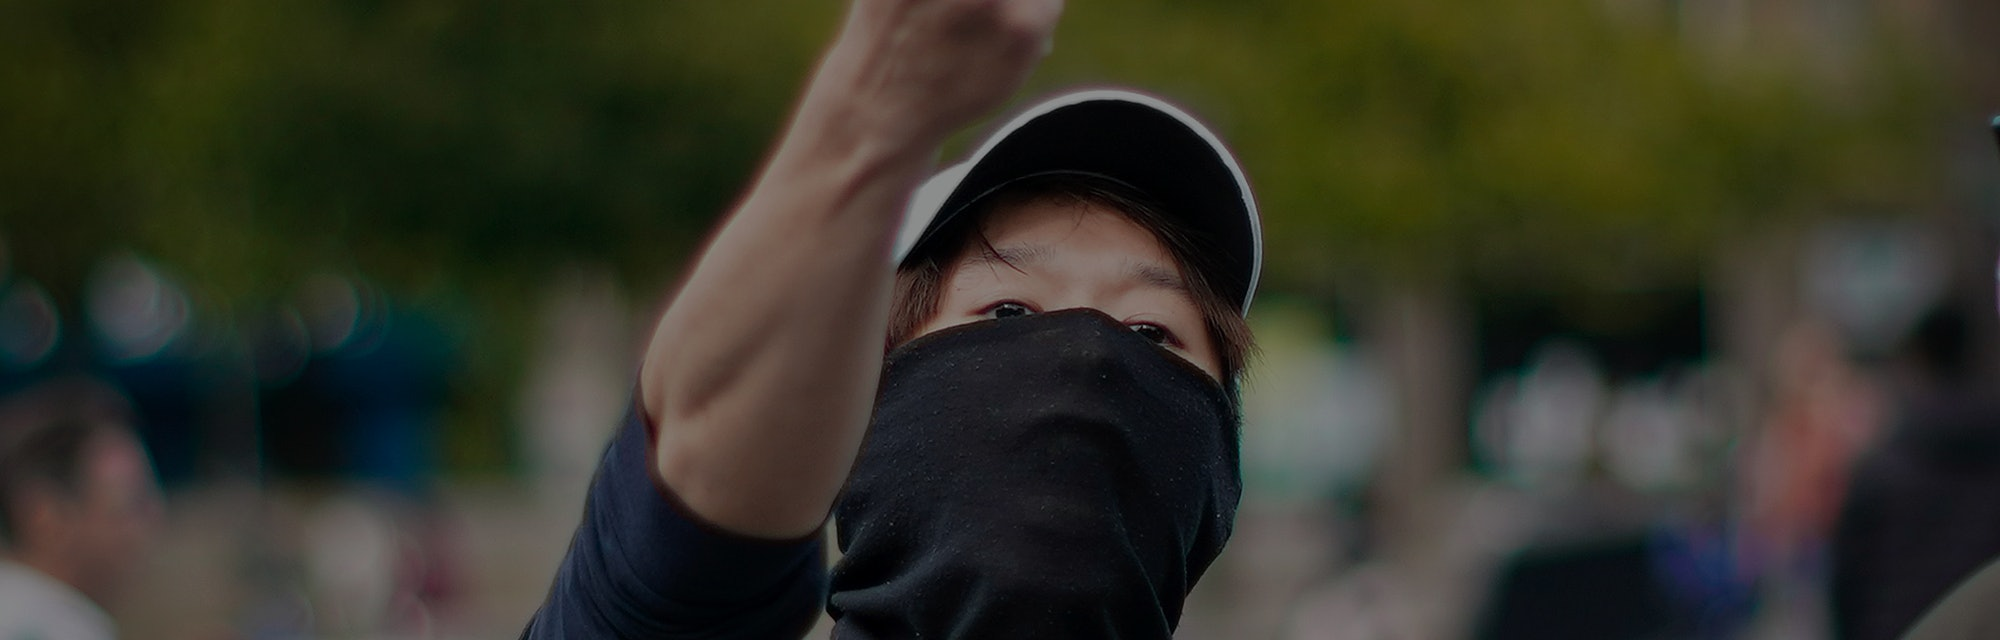 A protester in Hong Kong can be seen with a white hat and black face covering that hides the lower half of his face. He is showing someone his middle finger in anger.